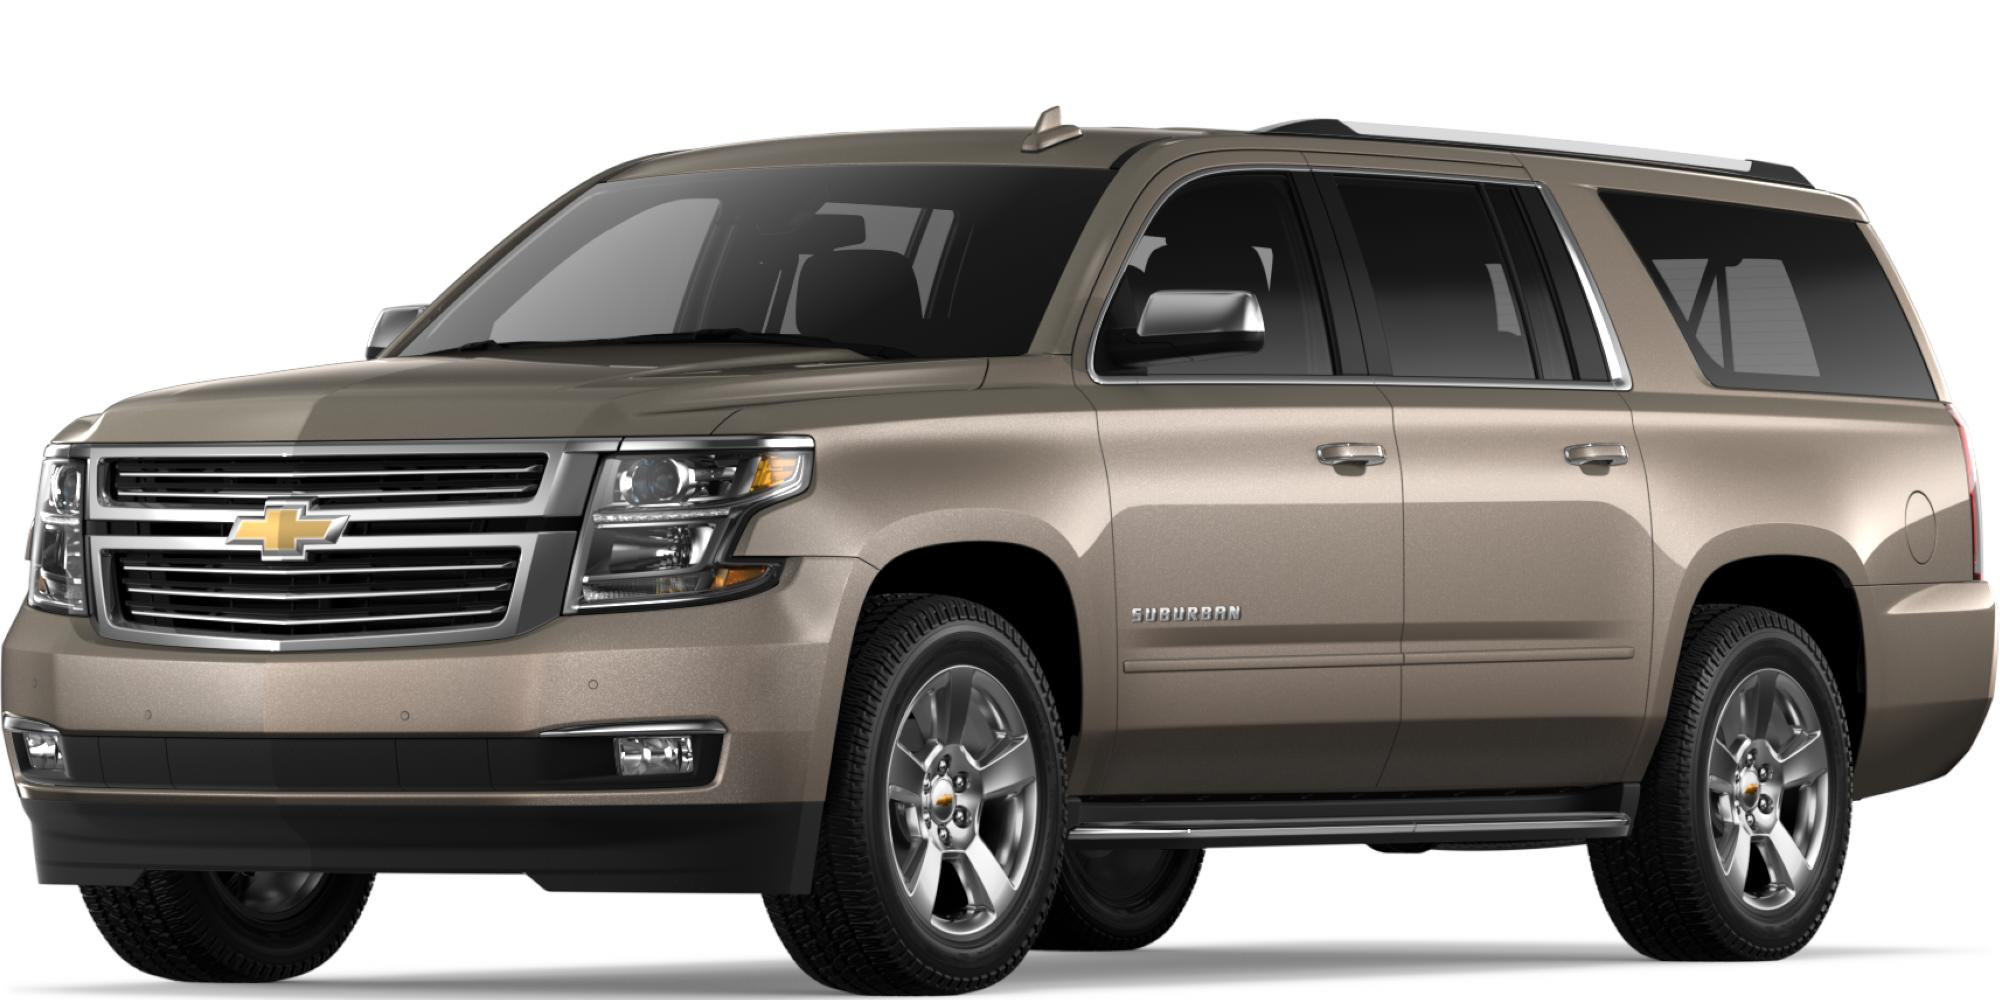 2018 Chevrolet Suburban for sale near Sacramento